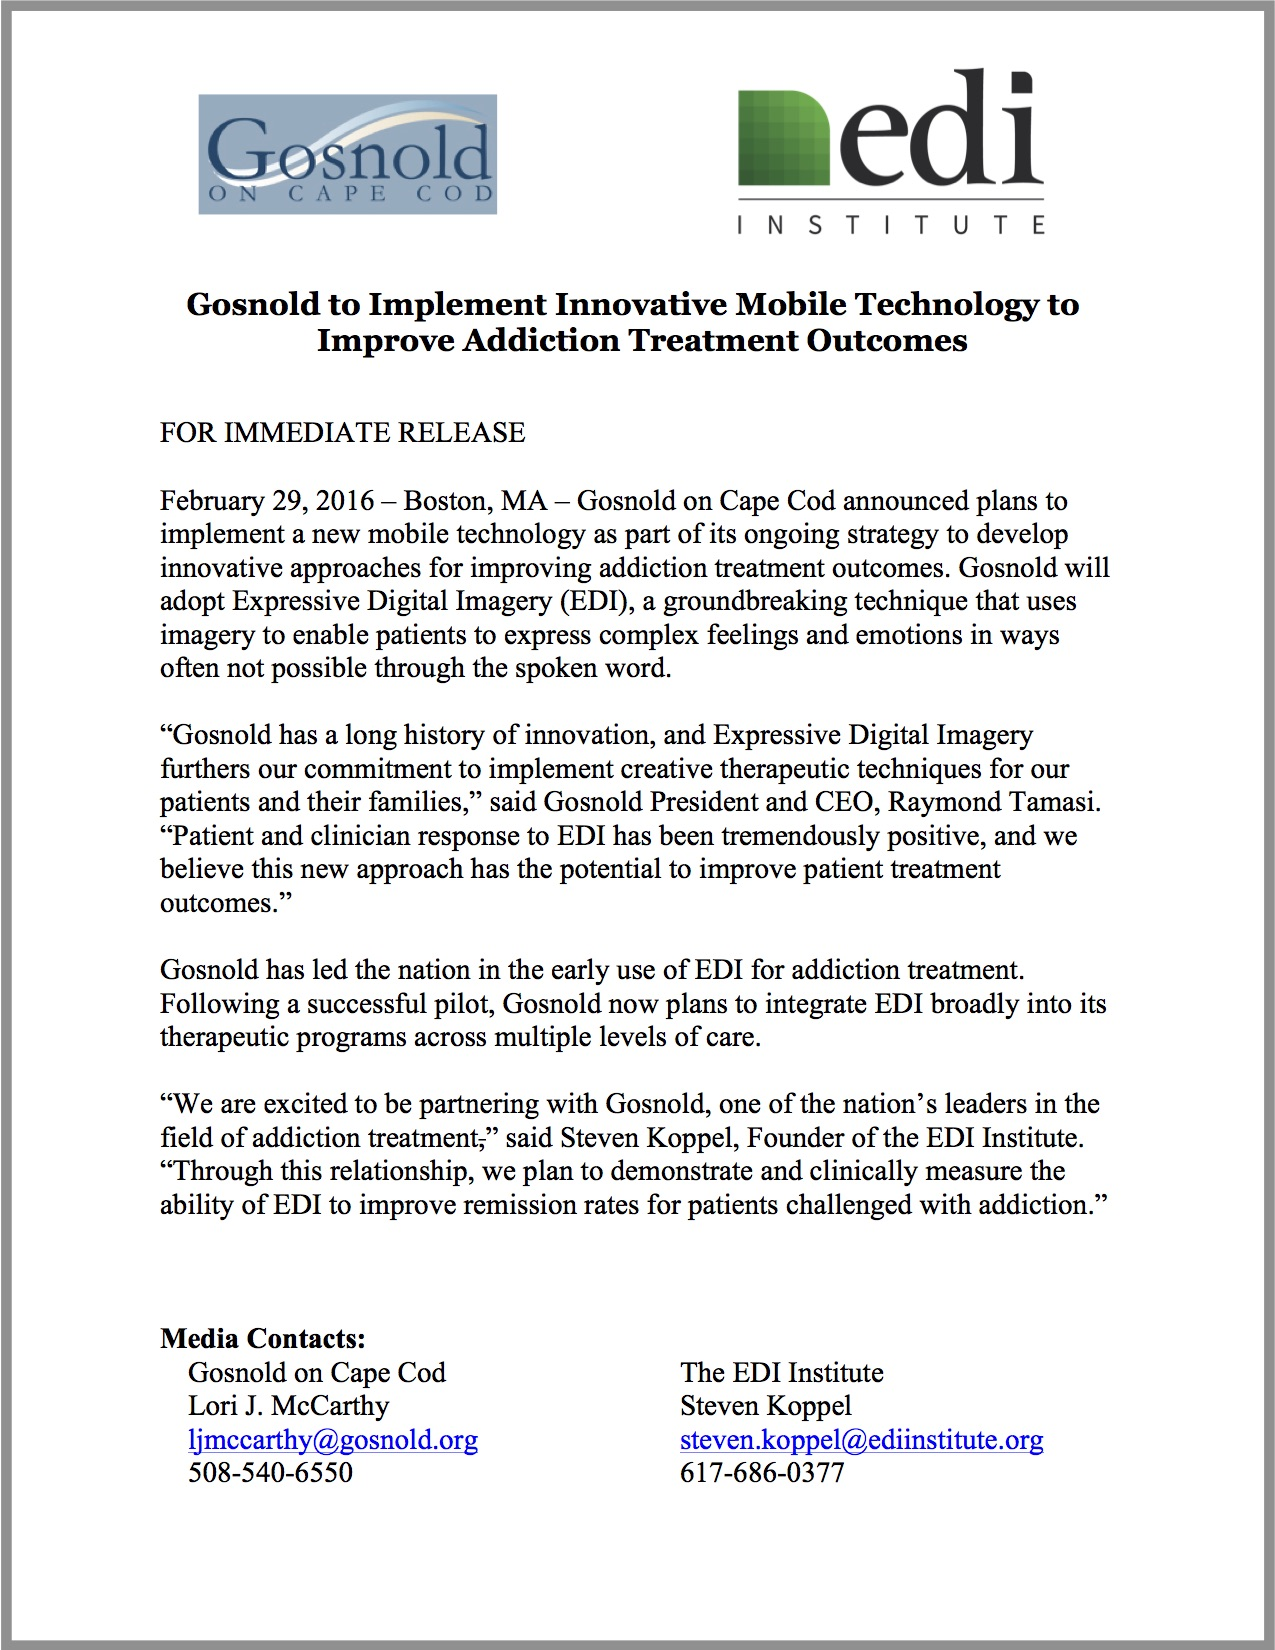 Press Release: Gosnold to Implement Innovative Mobile Technology to Improve Addiction Treatment Outcomes